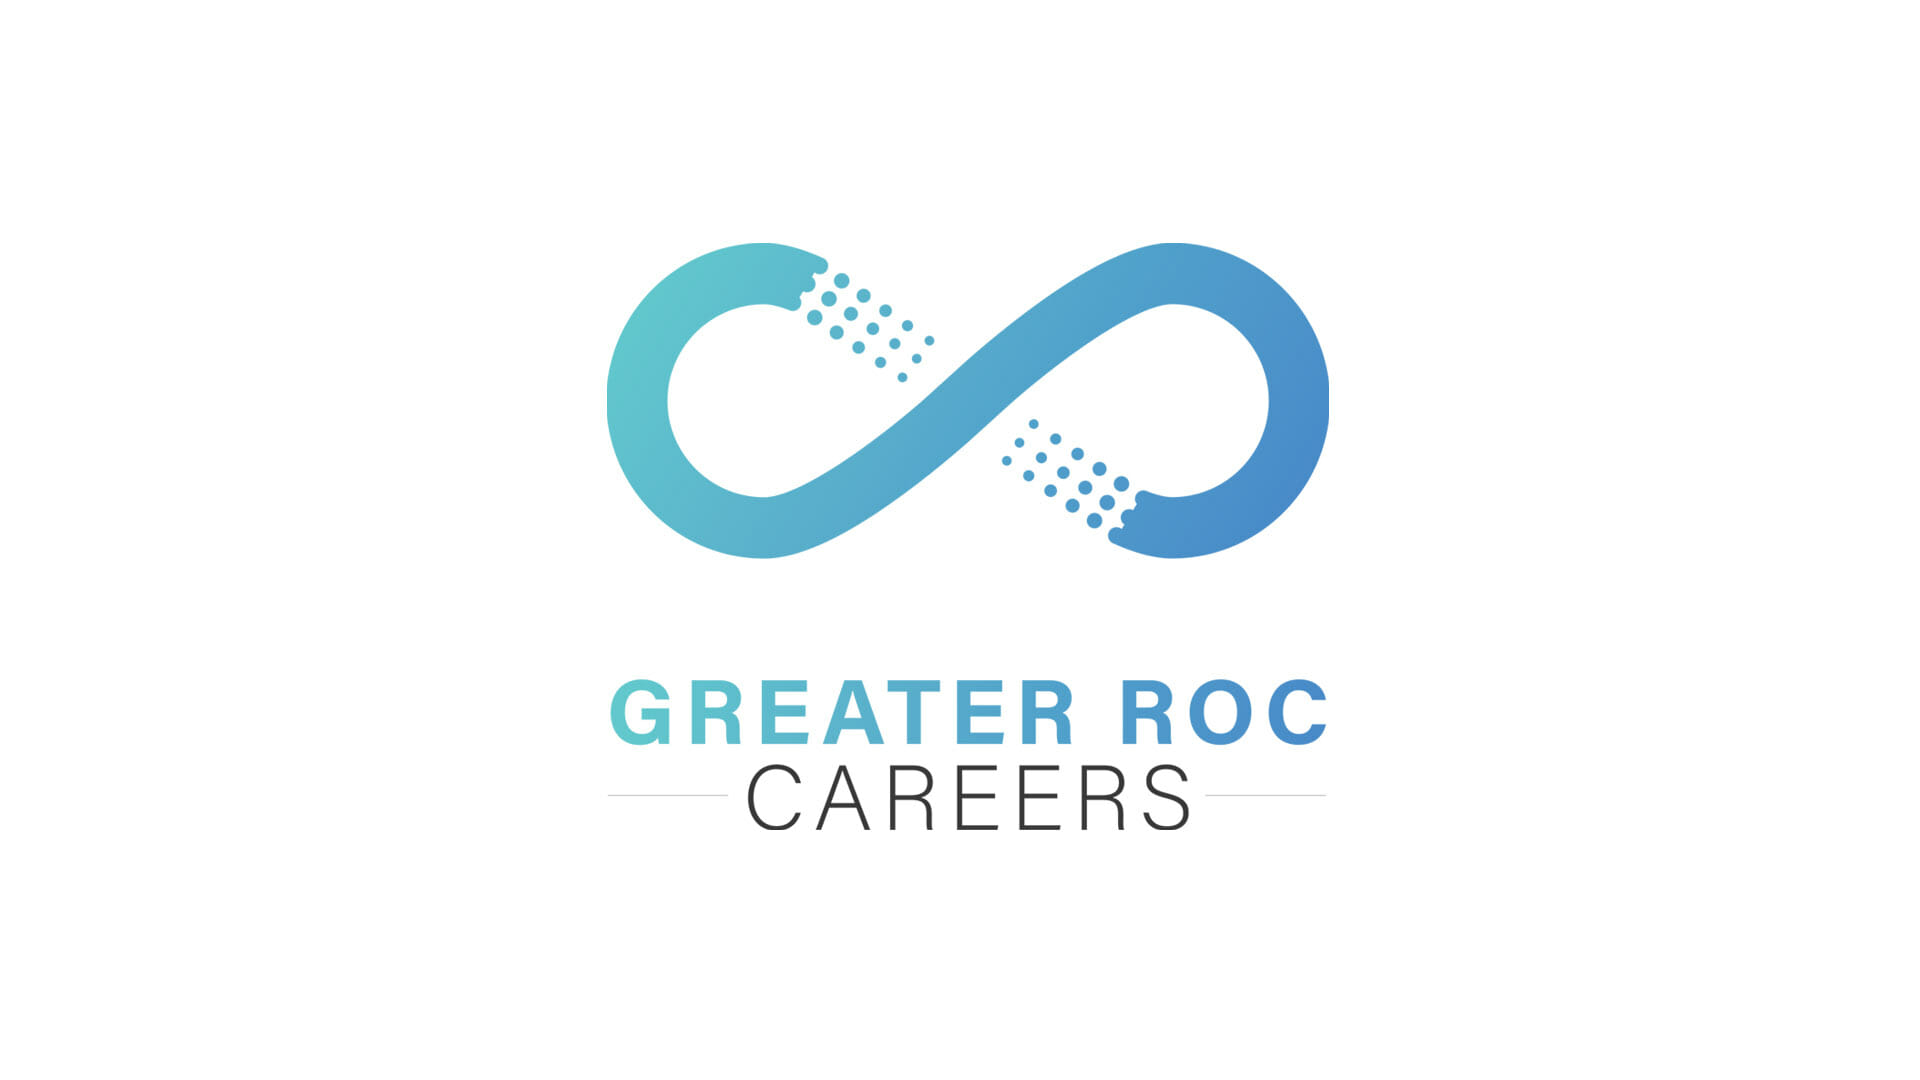 Greater ROC Careers Logo